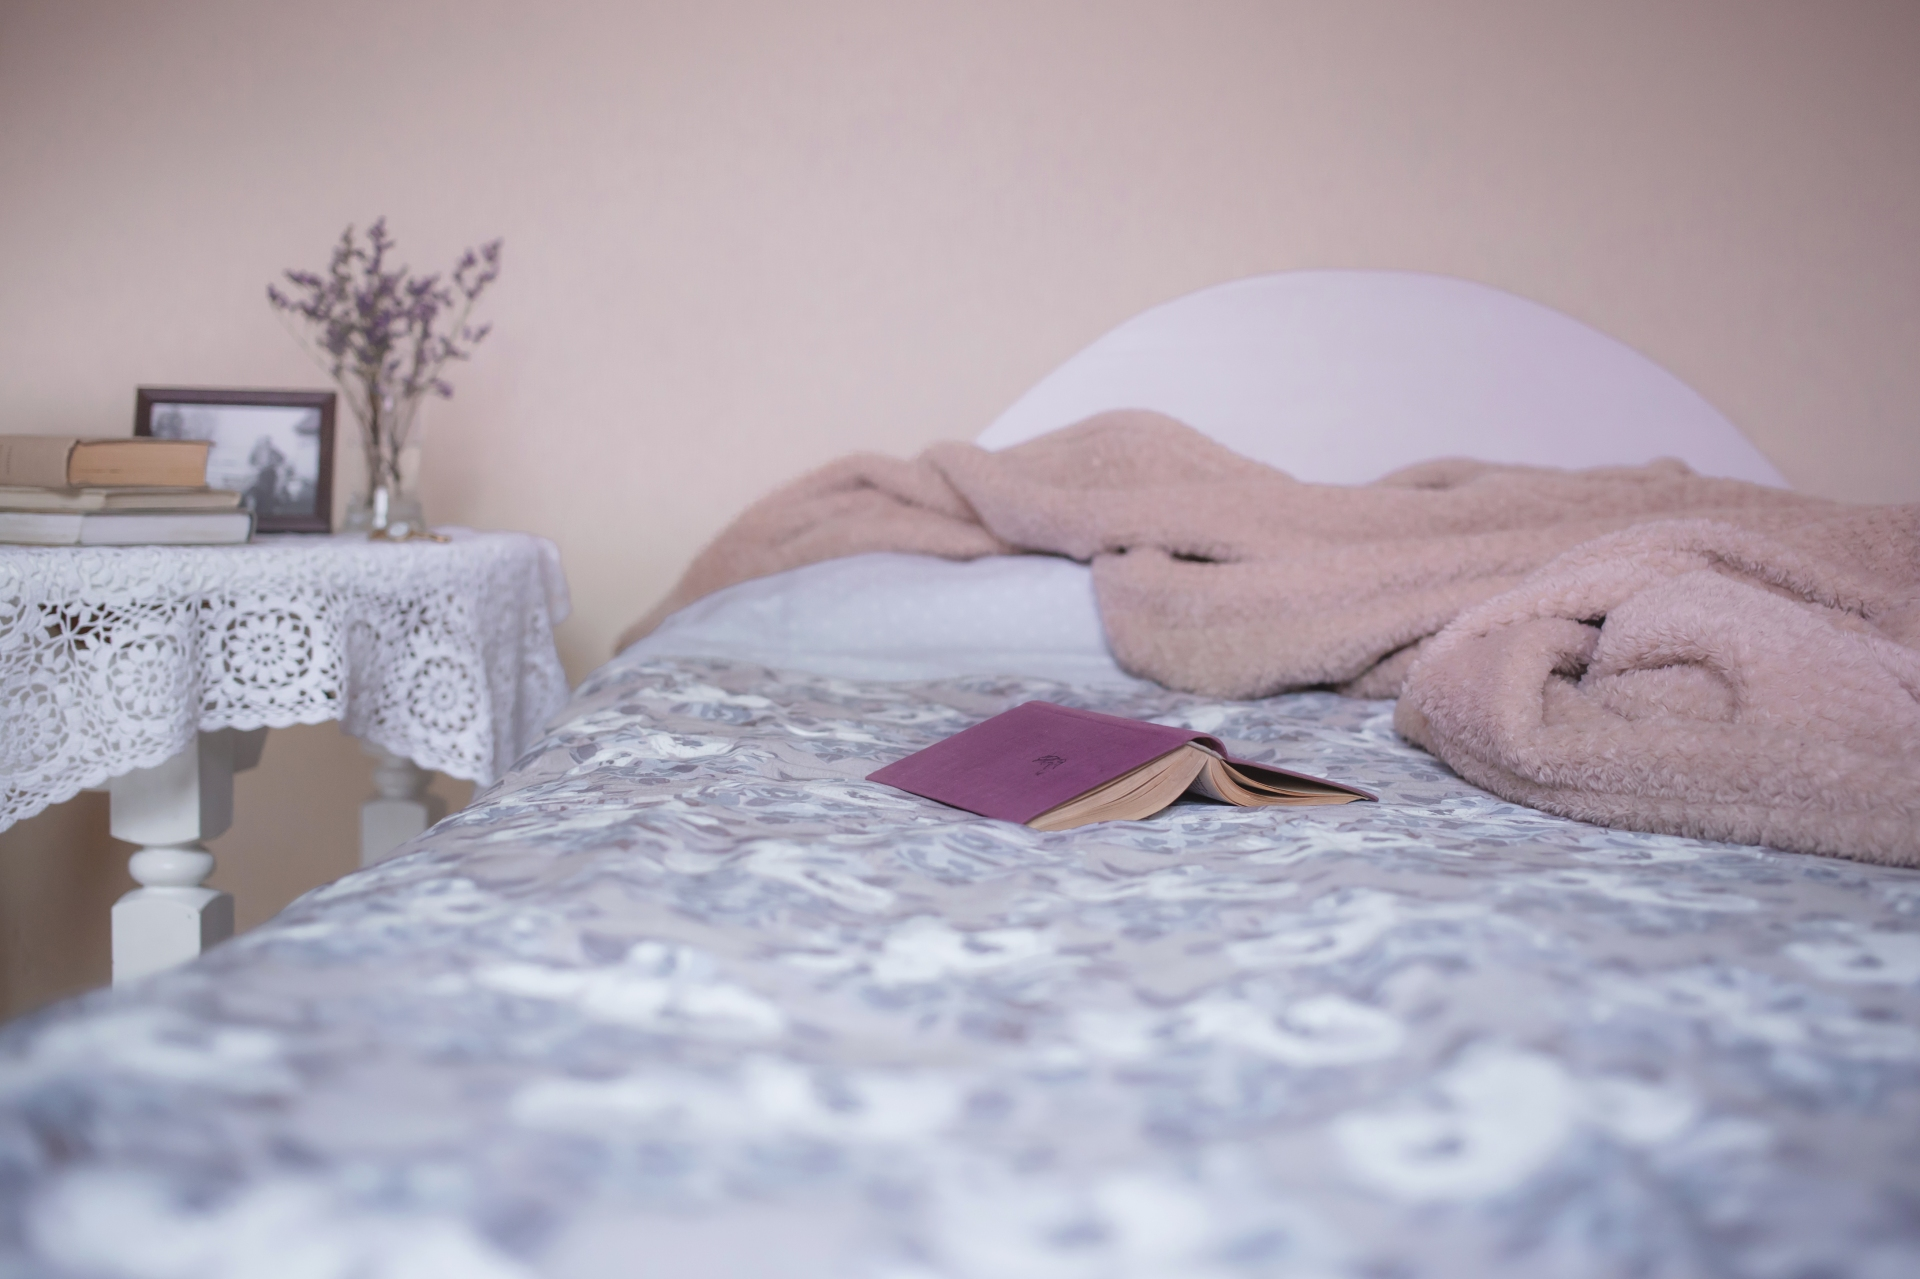 A bed made with blankets and a book lying on it.